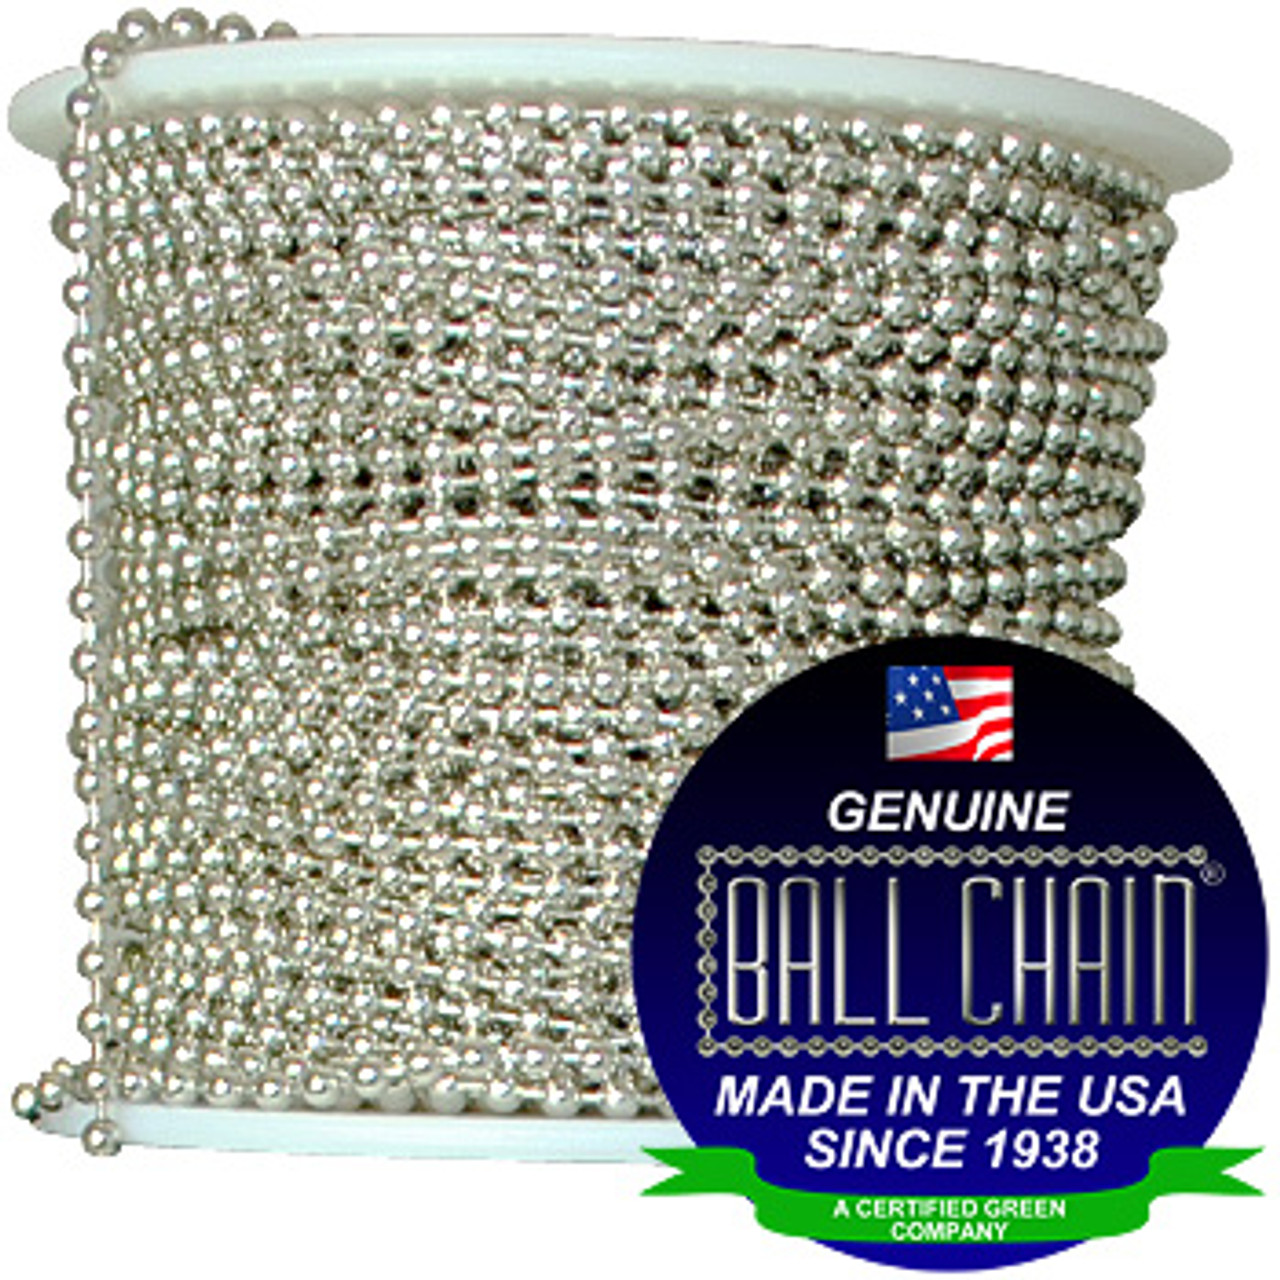 #2 Aluminum Ball Chain Spool that comes in 100 feet, 250 feet, 500 feet, 1000 feet and 200 feet. It is also known as #2 aluminum bead chain spool.